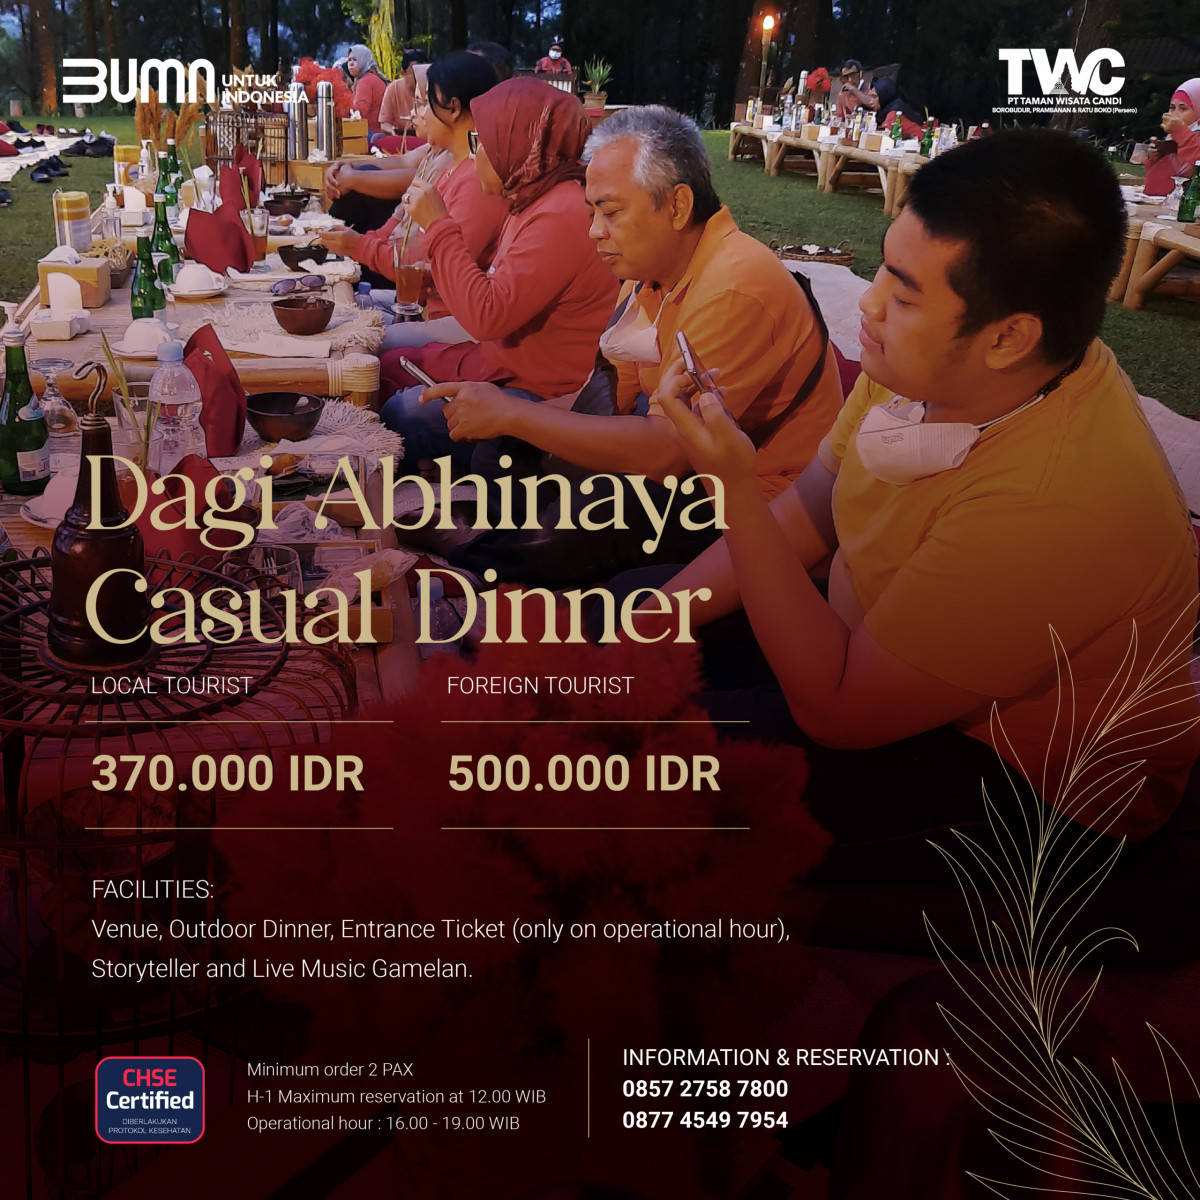 Casual-Dinner-Square-scaled